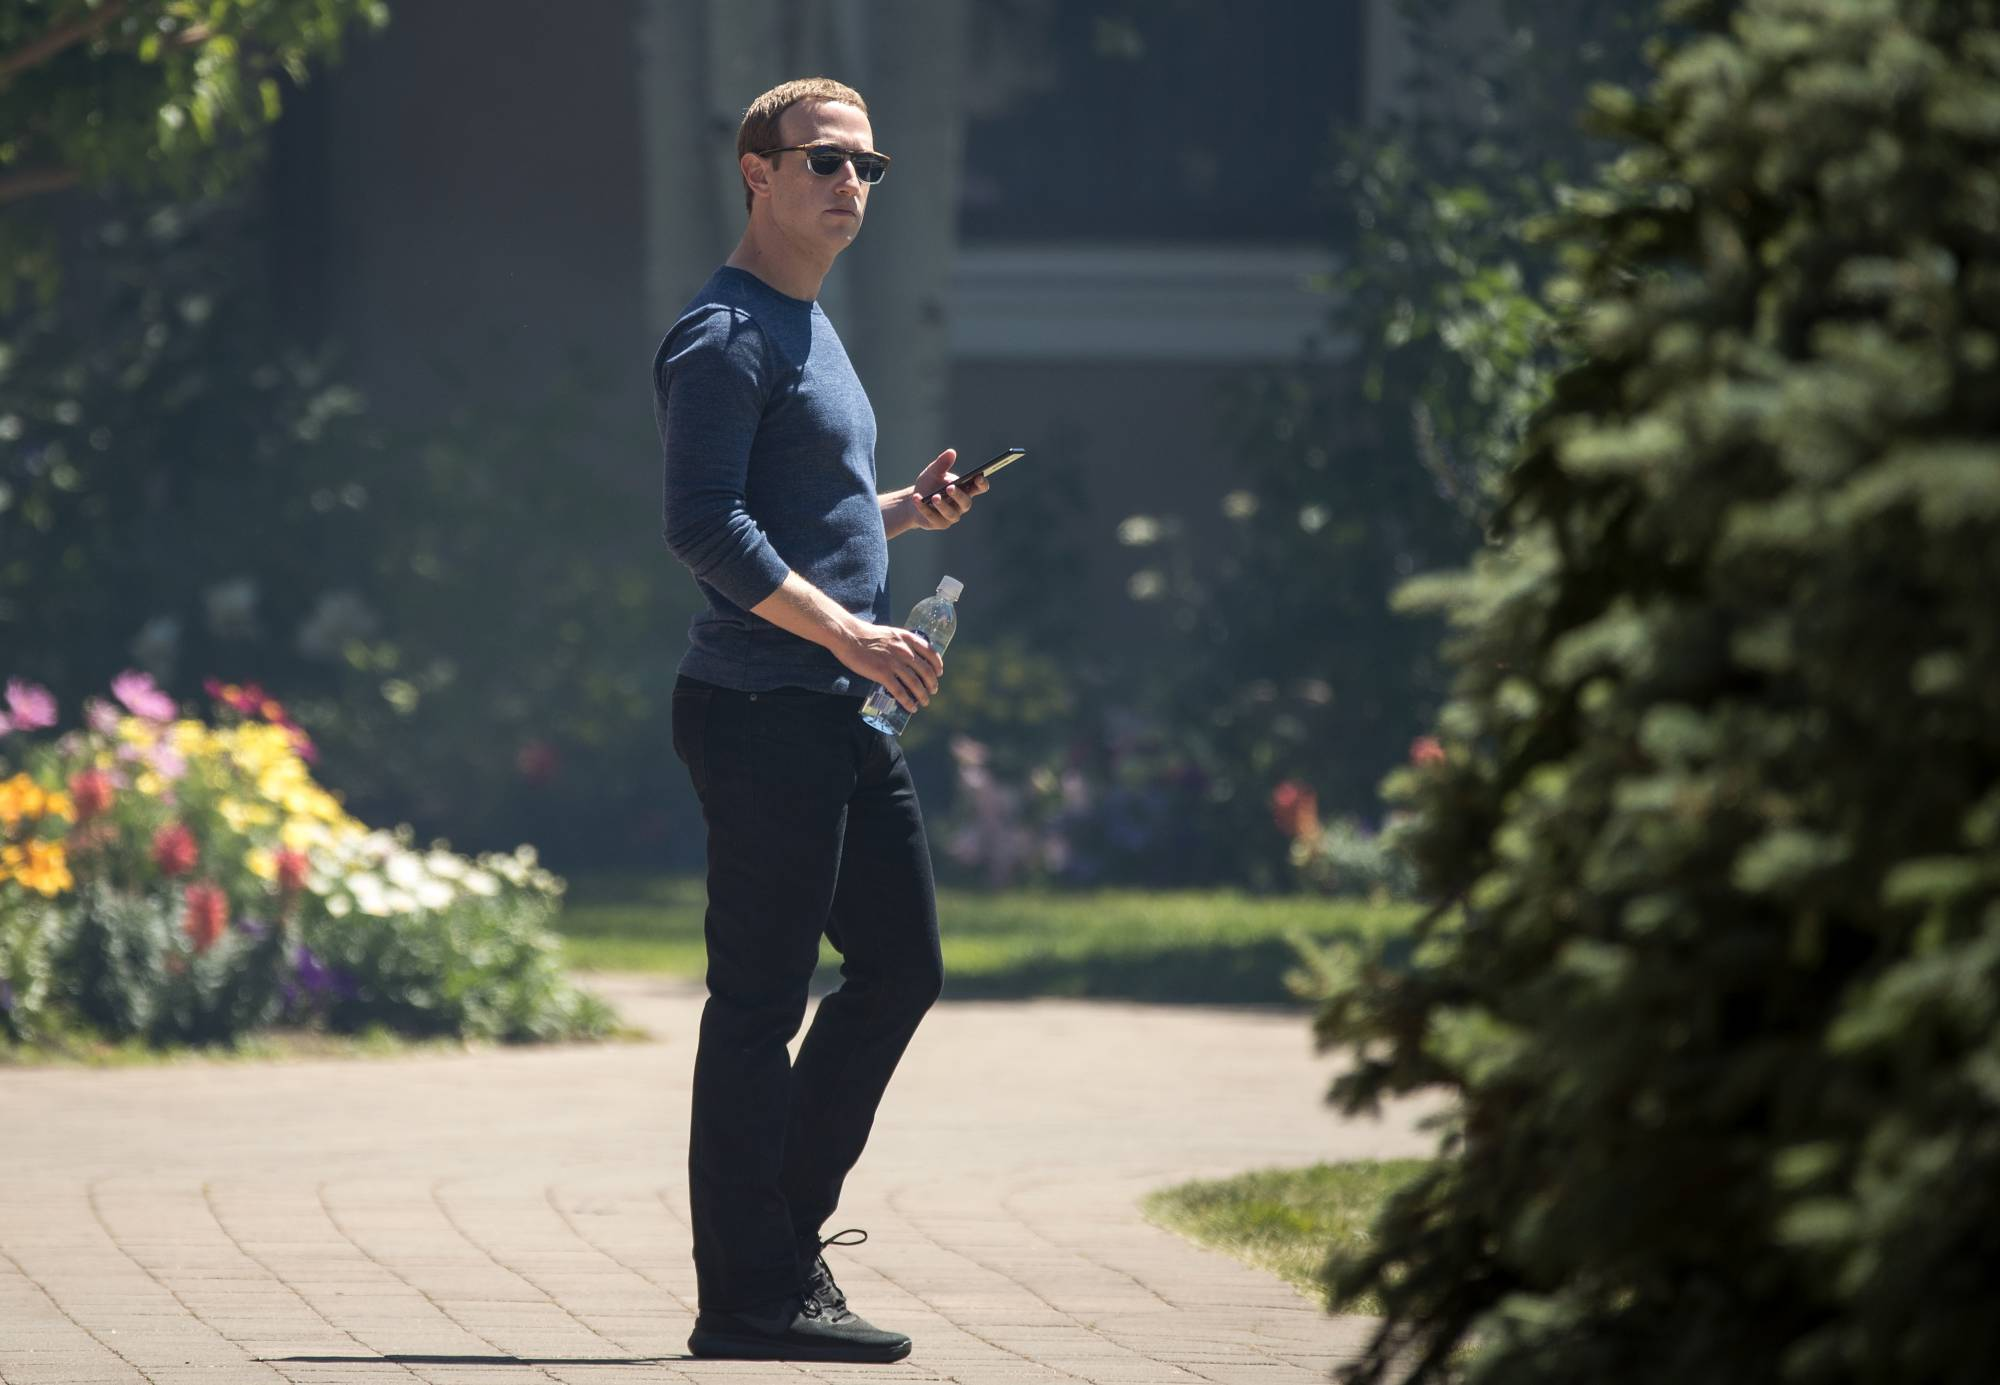 Facebook CEO Mark Zuckerberg didn't know about company's controversial lobbying, opposition research tactics.